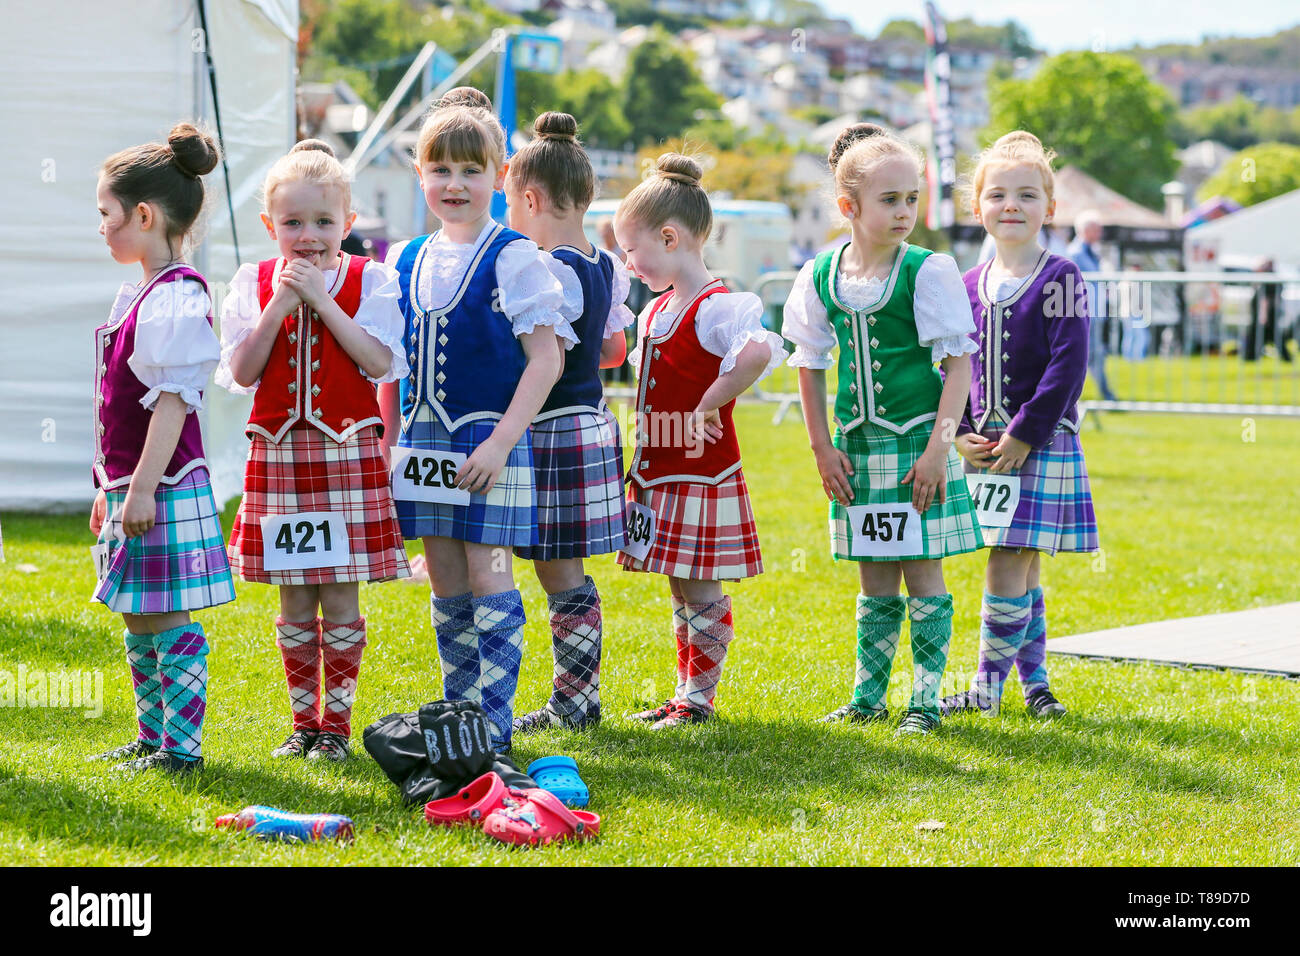 Gourock, UK 12th May 2019. The Highland Games season begins with the Gourock Highland Games at Battery Park, Gourock and features Pipe Band competitions, traditional Scottish Heavy athletics such as throwing the 16 pound weight and highland dancing with competitors as young as 5 years. This year there was an international list of competitors from countries including Poland and America Credit: Findlay/Alamy Live News Stock Photo